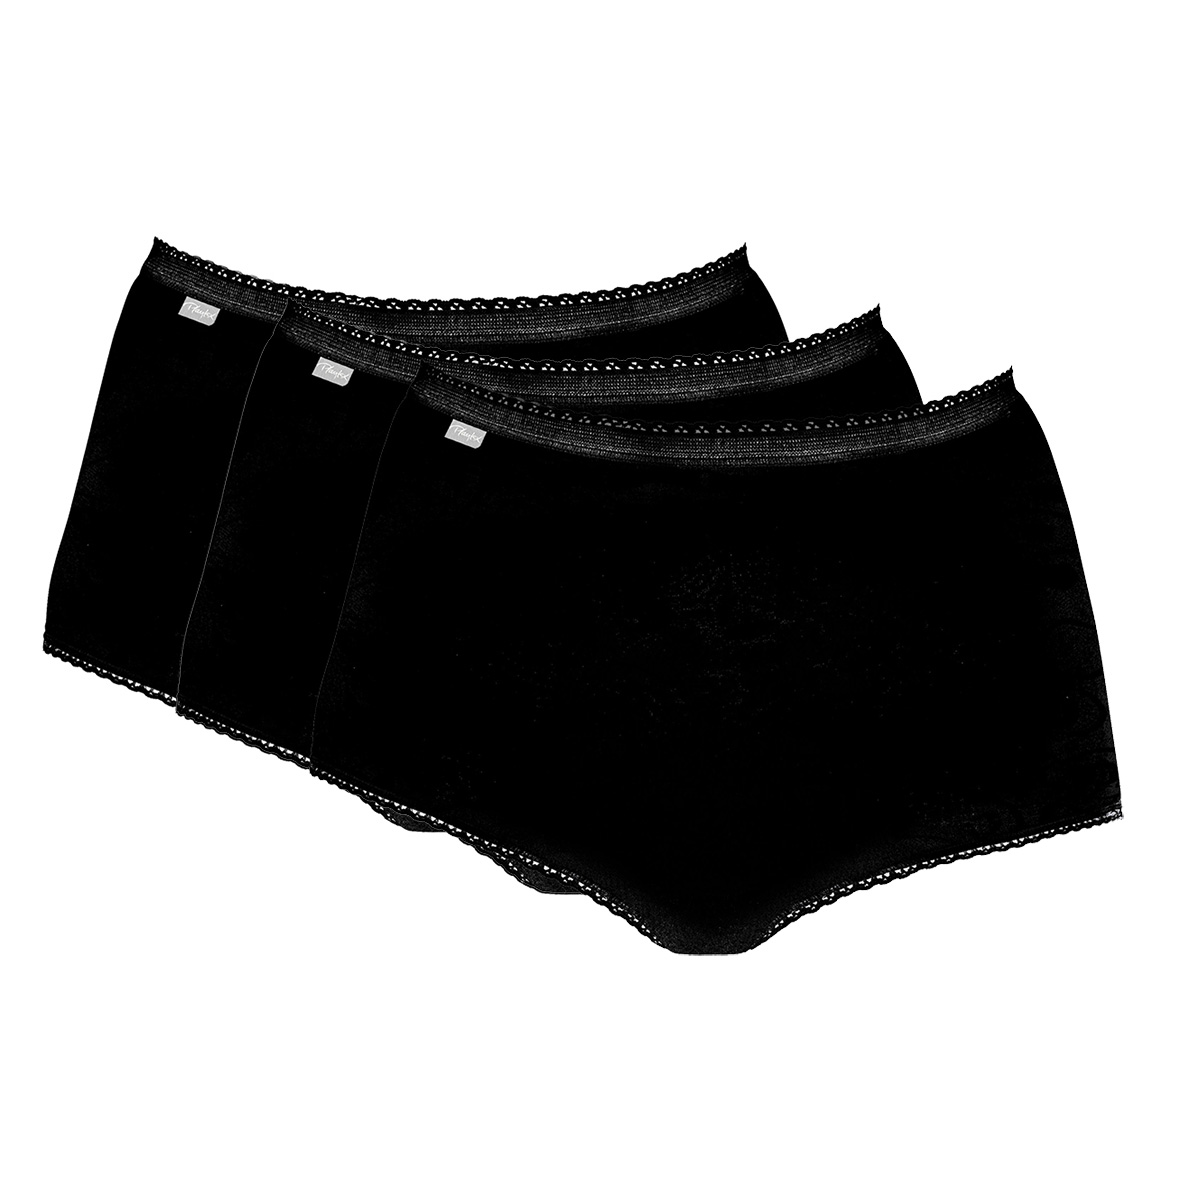 2 Maxi Briefs in Black – Stretch Cotton-PLAYTEX